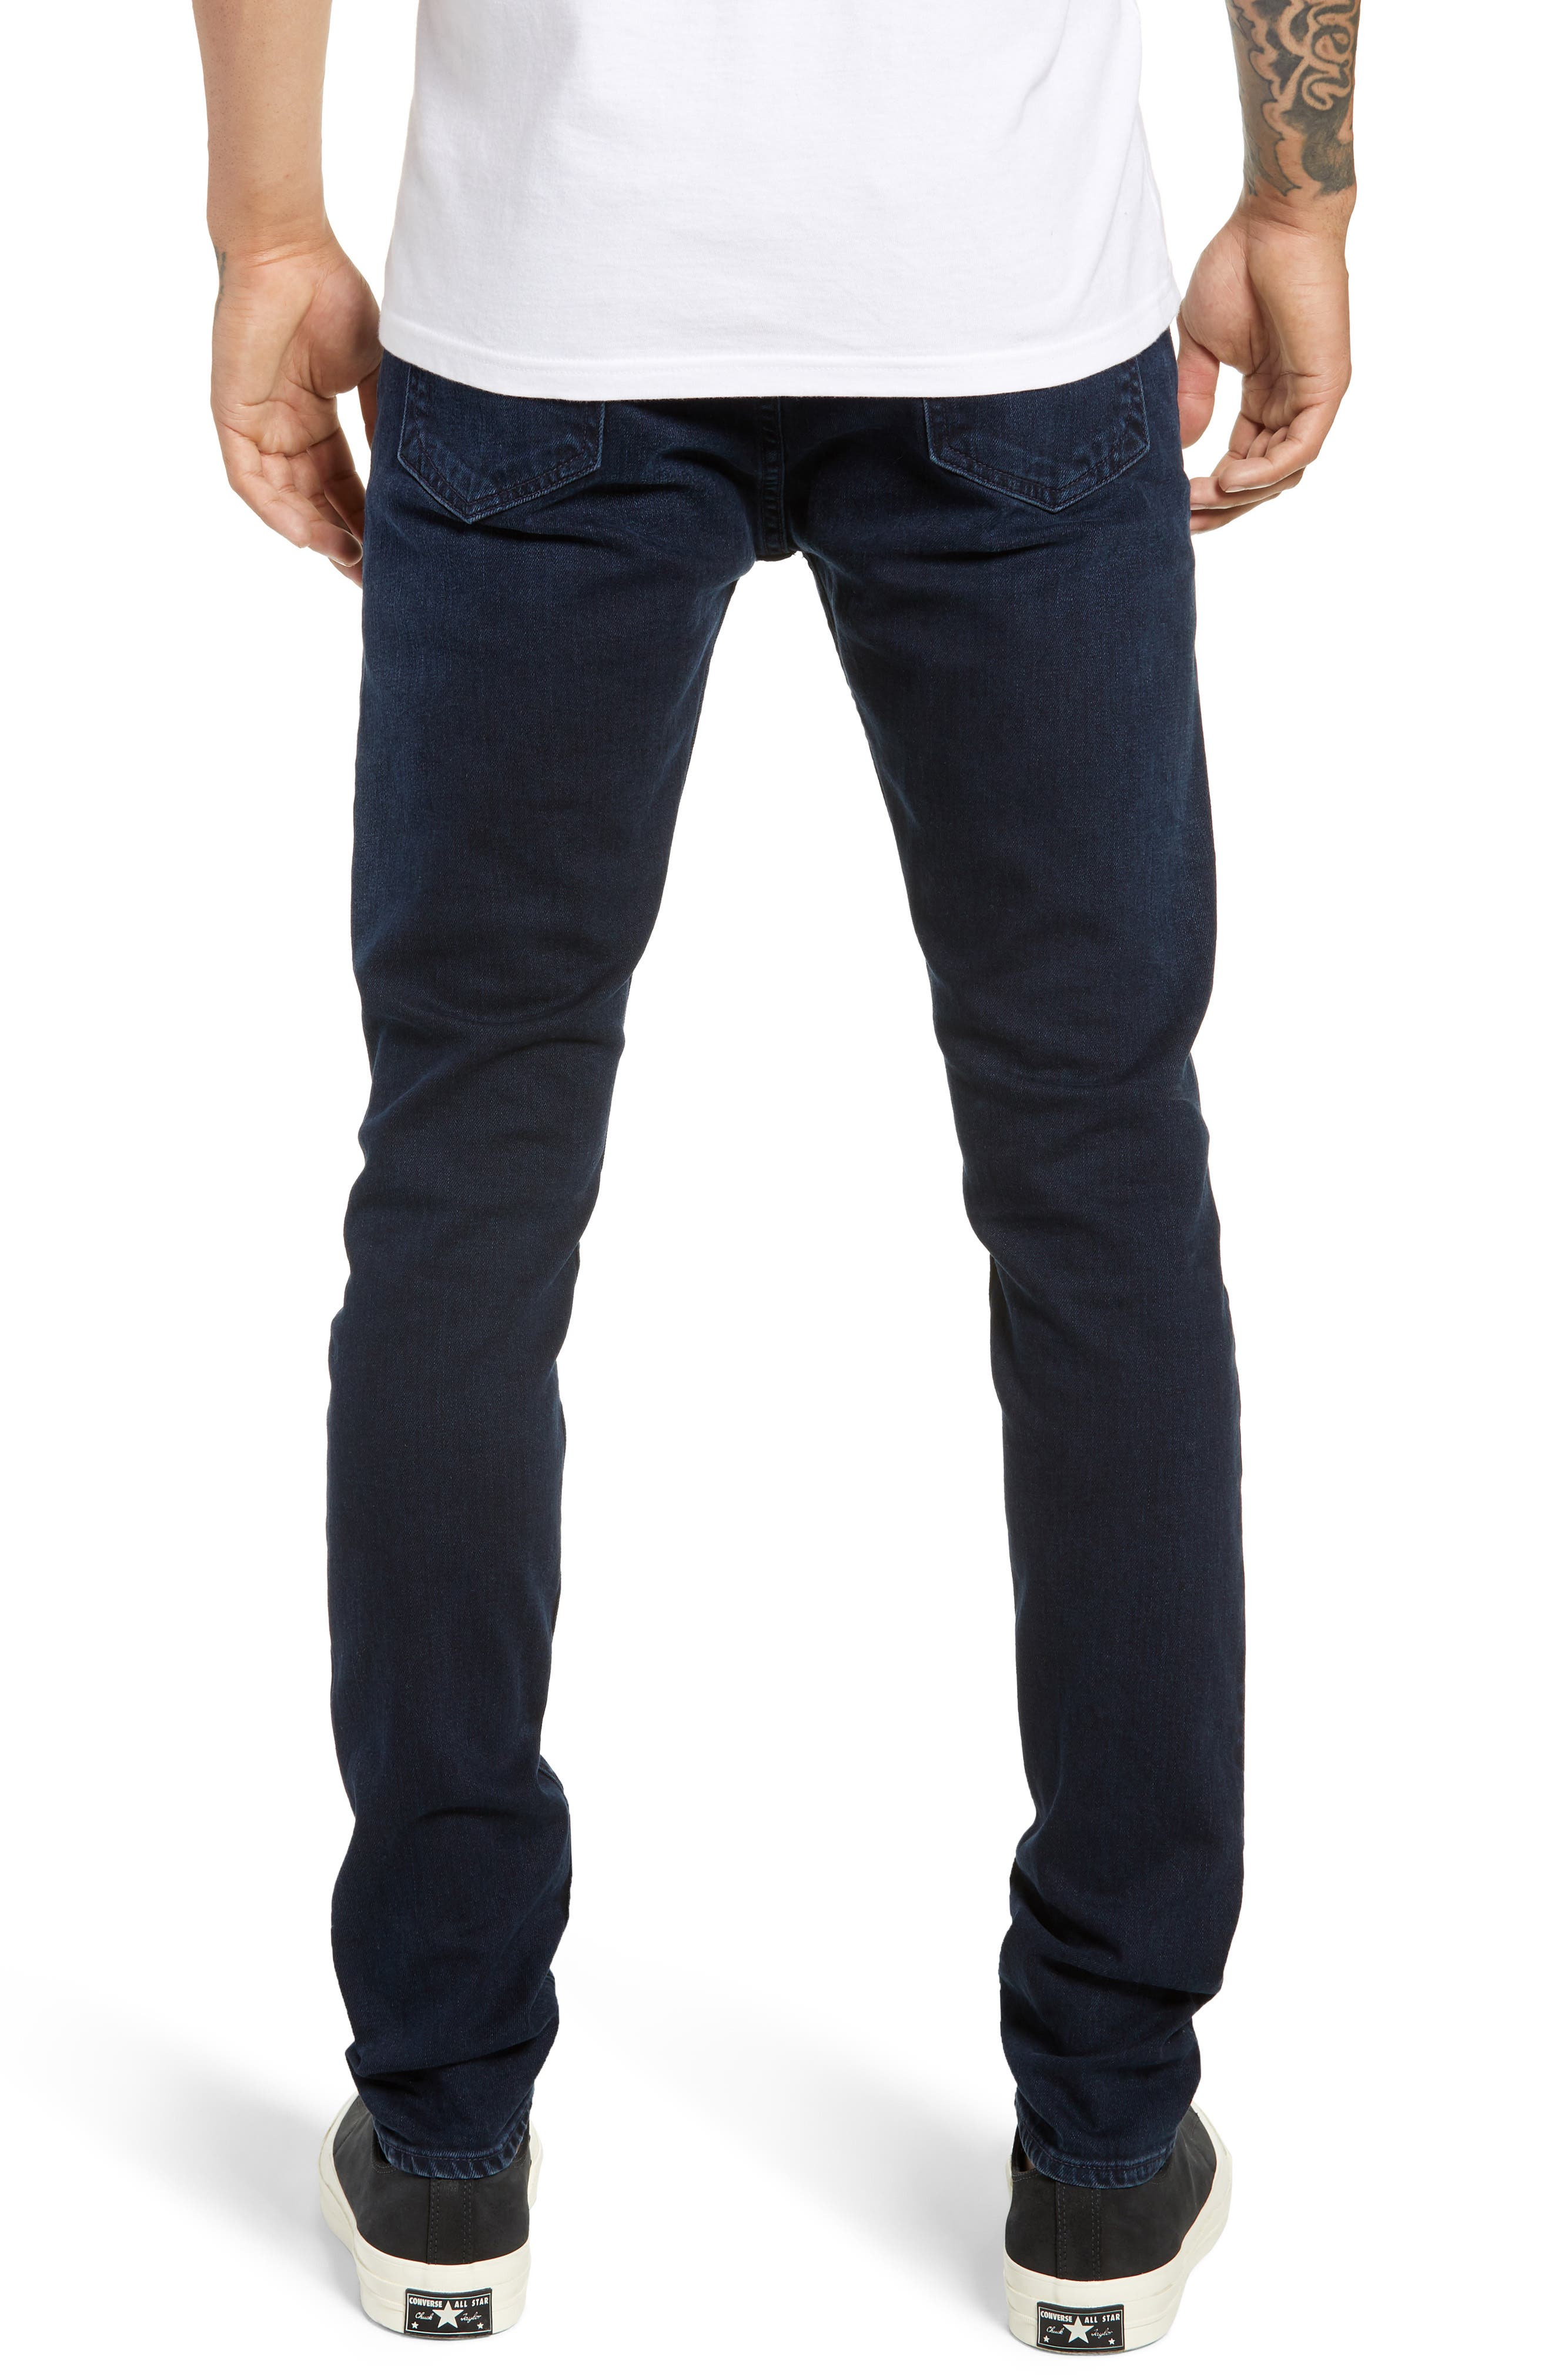 Fit 1 Skinny Fit Jeans,                             Alternate thumbnail 2, color,                             420